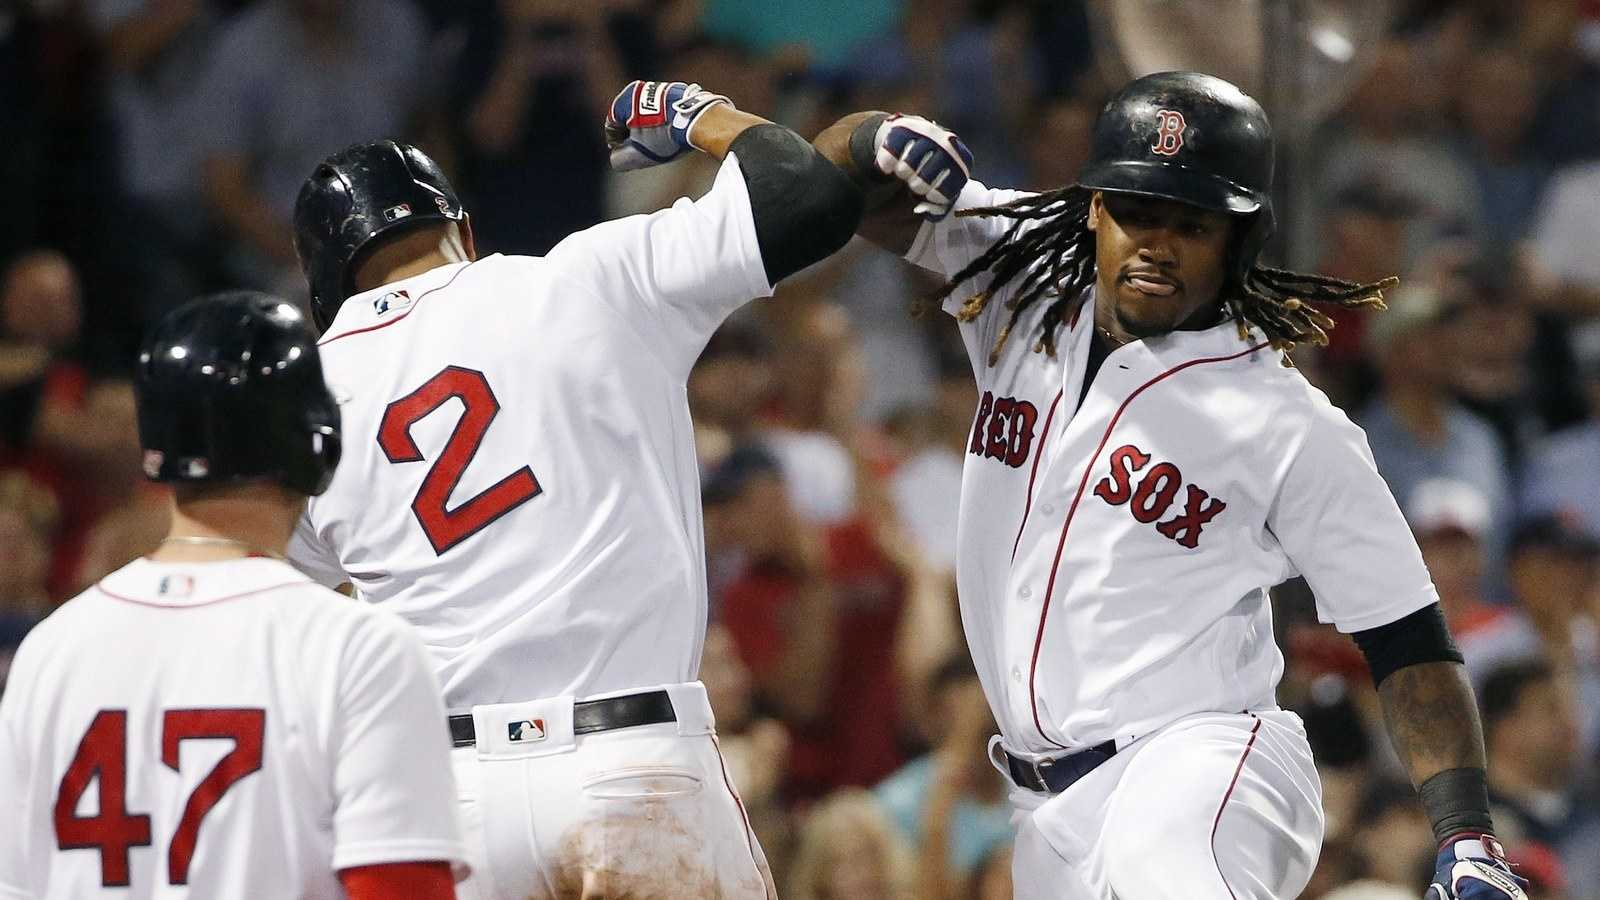 Boston Red Sox's Hanley Ramirez, right, celebrates his three-run home run that also drove in Xander Bogaerts (2) during the fifth inning of a baseball game against the New York Yankees in Boston, Sunday, Sept. 18, 2016.